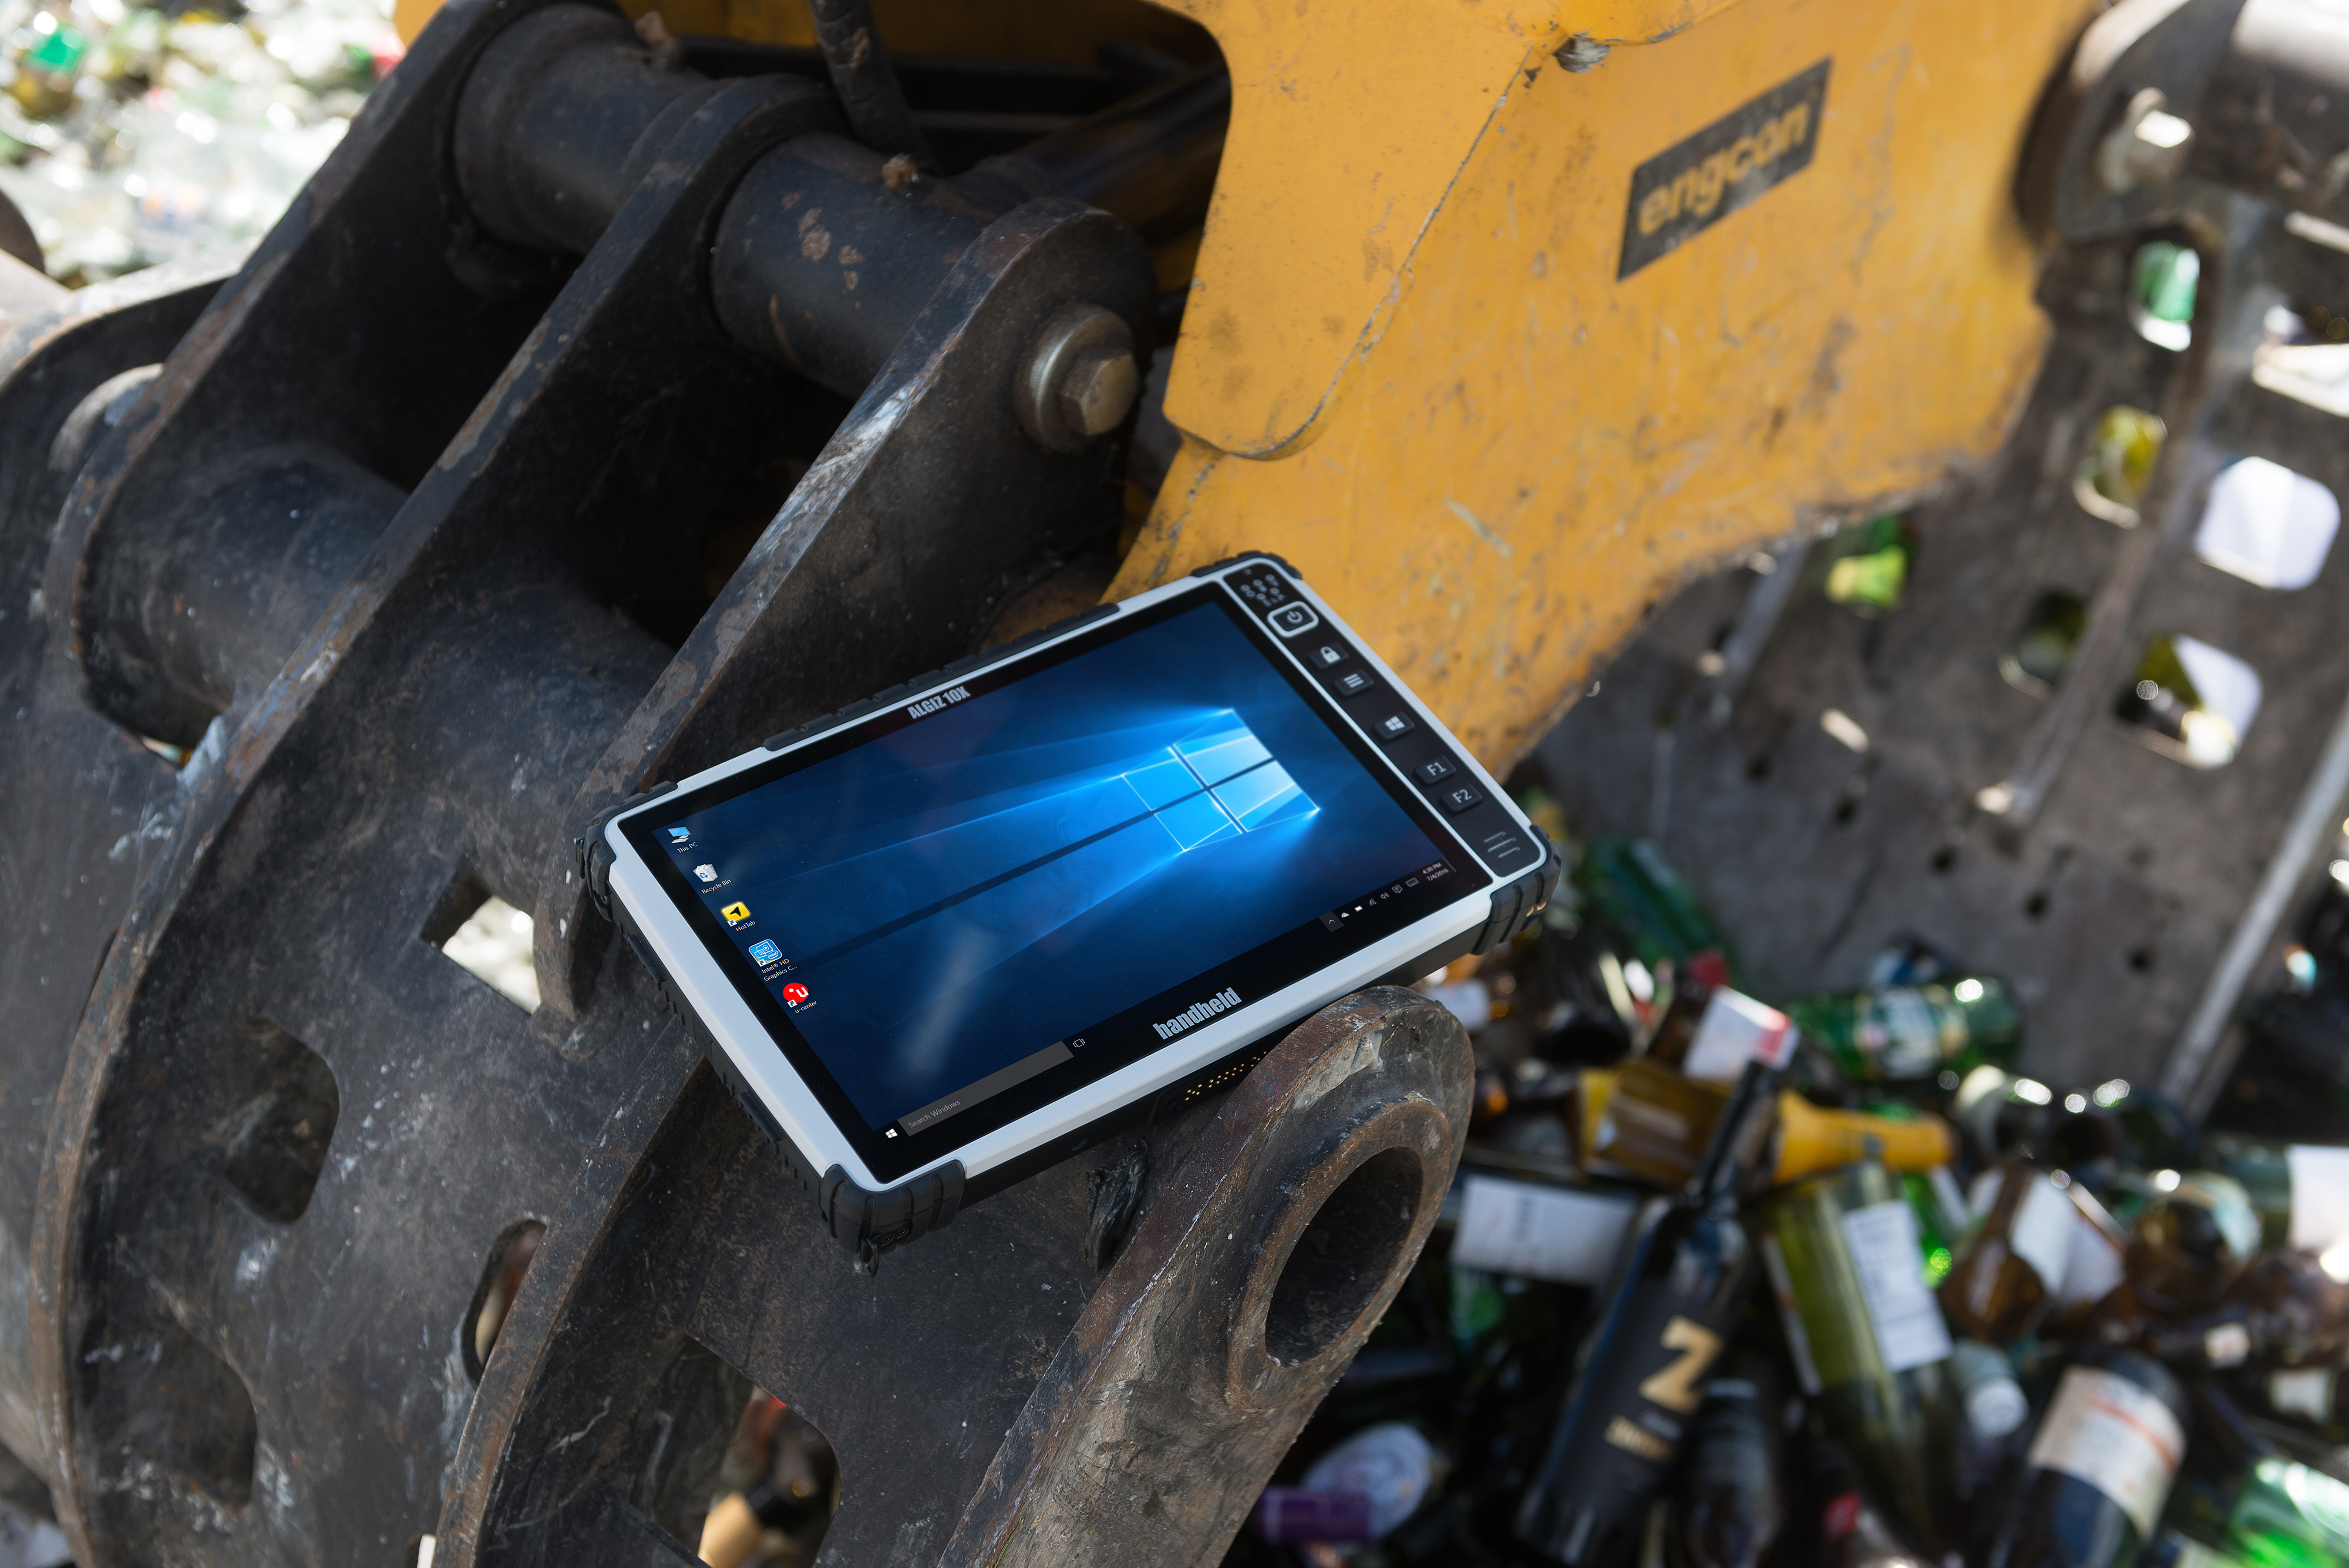 Algiz-10X-rugged-capacitive-tablet-recycling.jpg